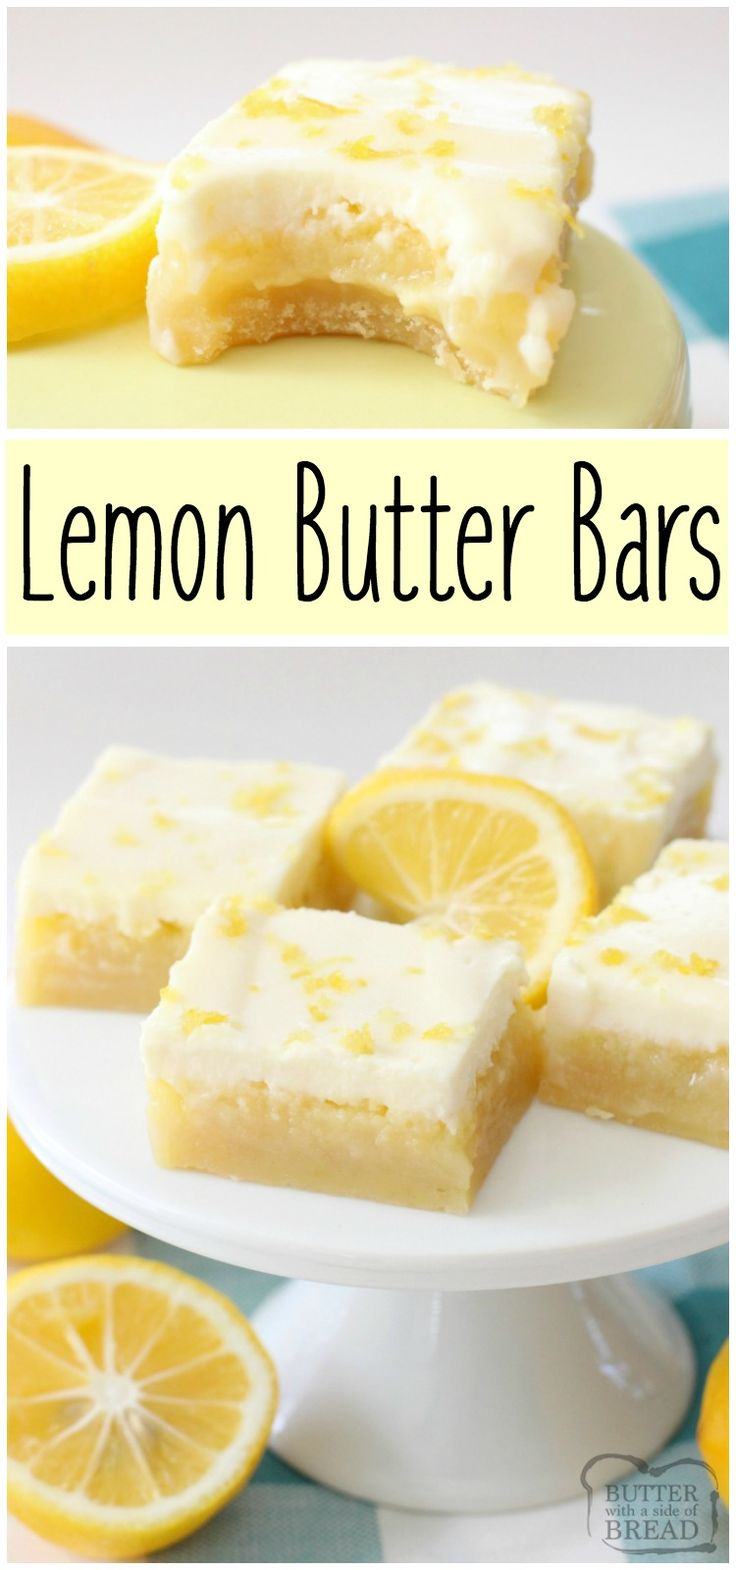 Lemon Butter Bars - Butter With A Side of Bread